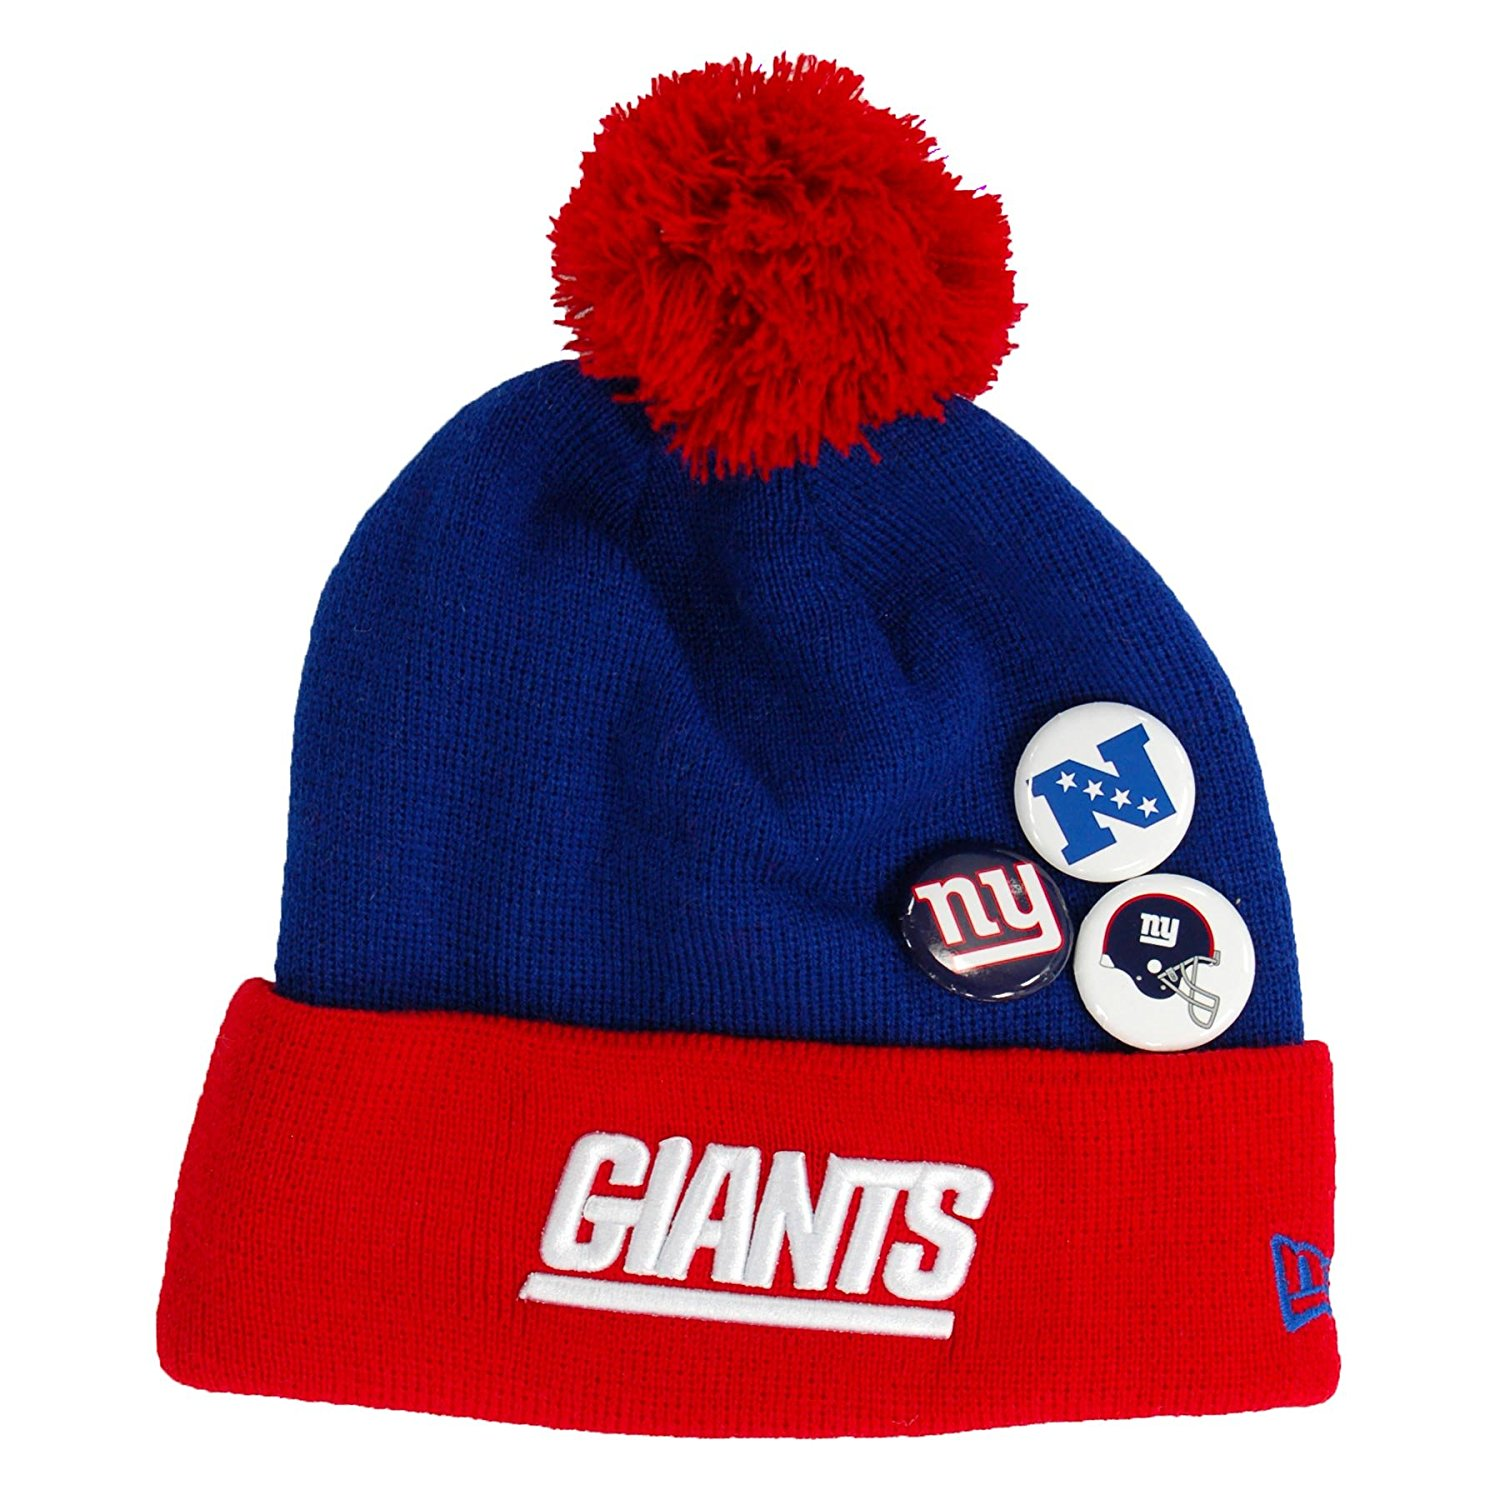 Get Quotations · New Era Nfl Button up Beanies 2013 14 (NY GIANTS) c849b1b54